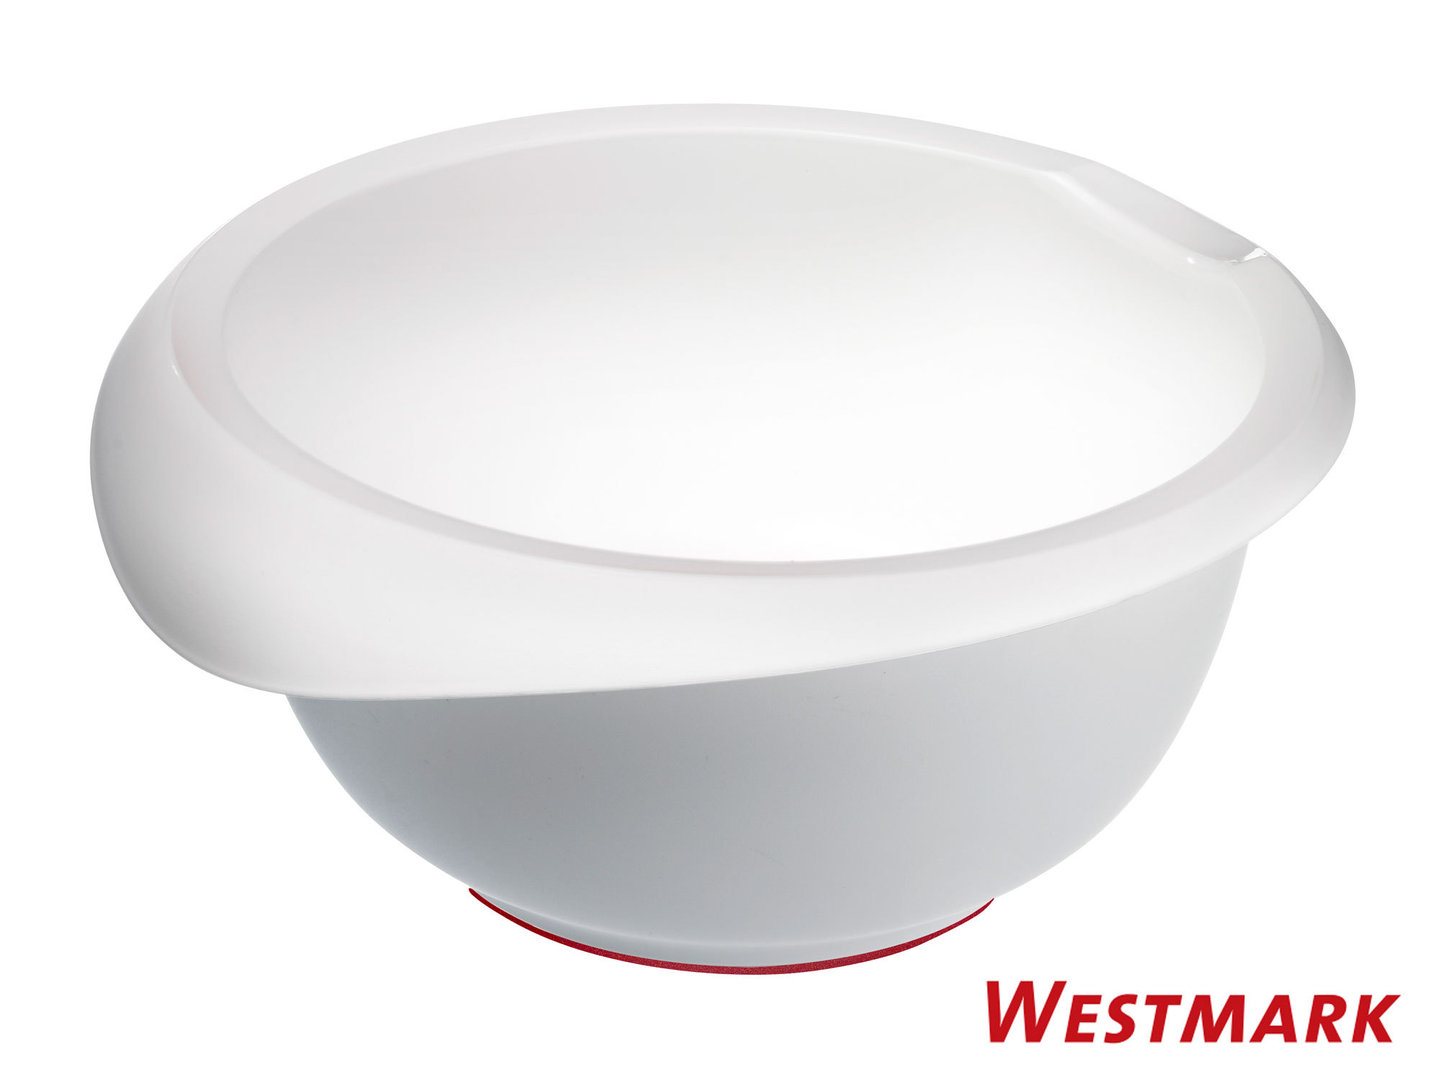 WESTMARK mixing bowl 3,5 L extra large